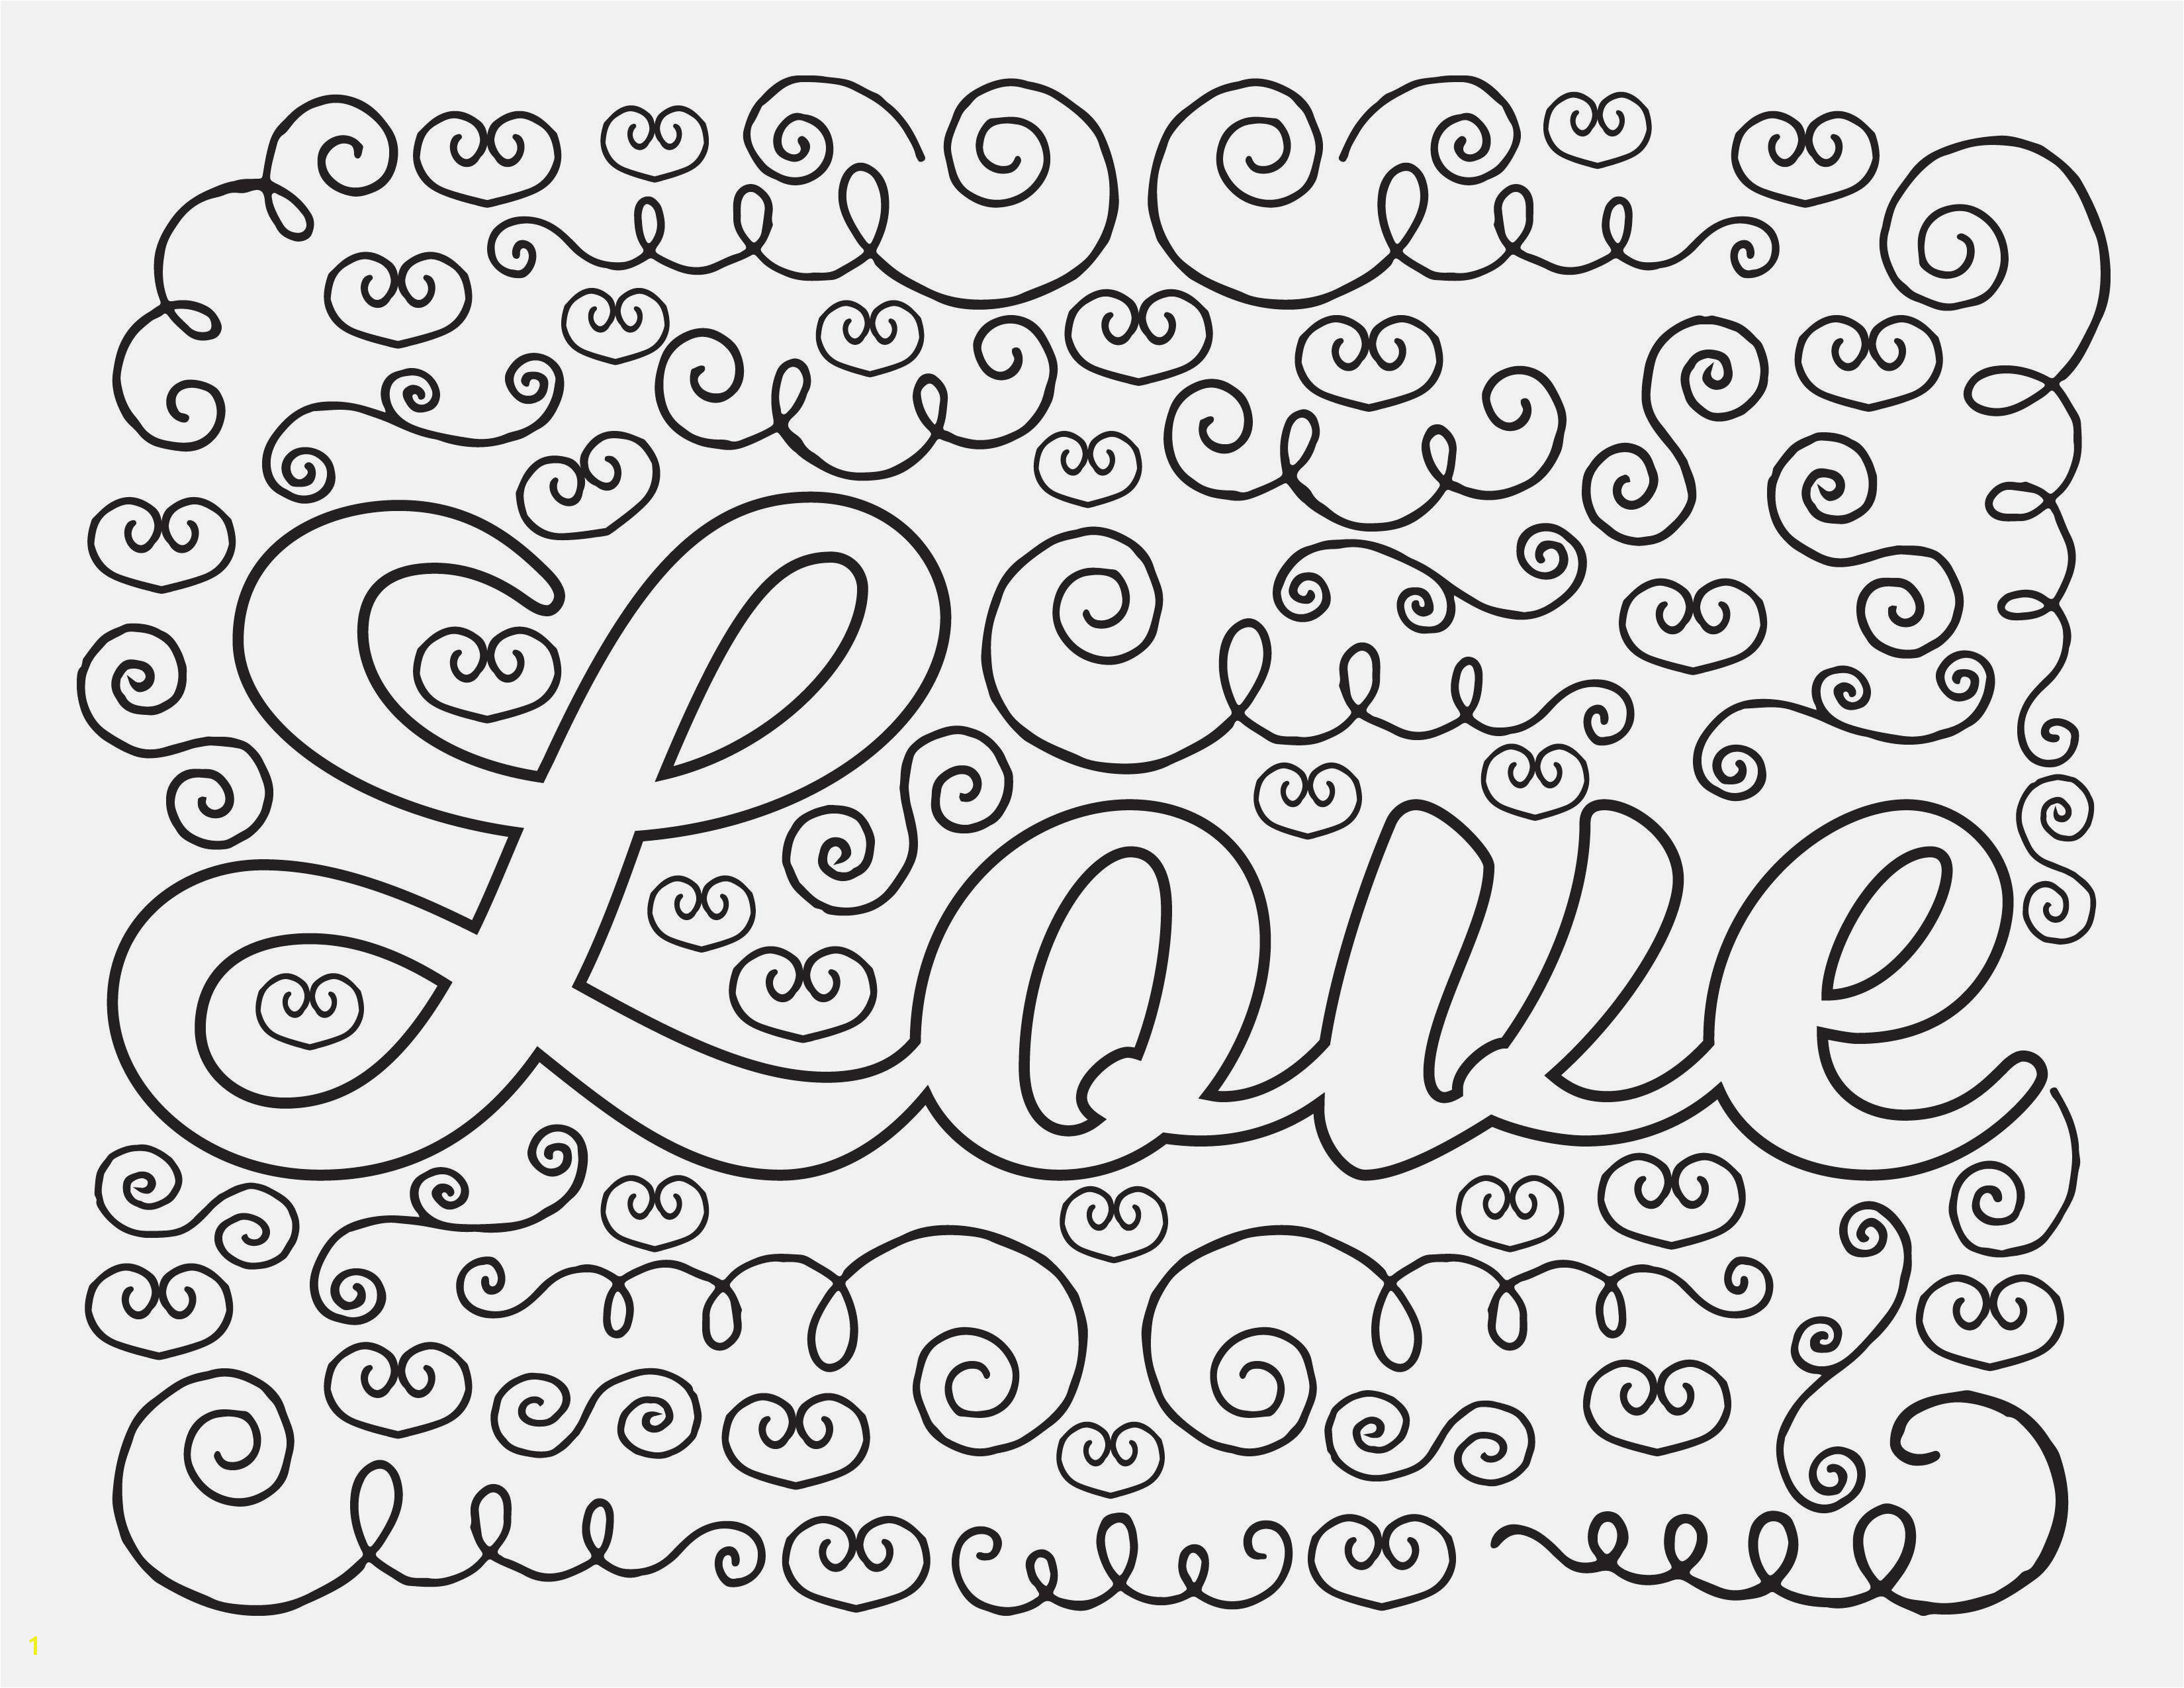 Free Flower Coloring Pages the First Ever Custom Free Flower Coloring Pages Inspirational Cool Vases Flower